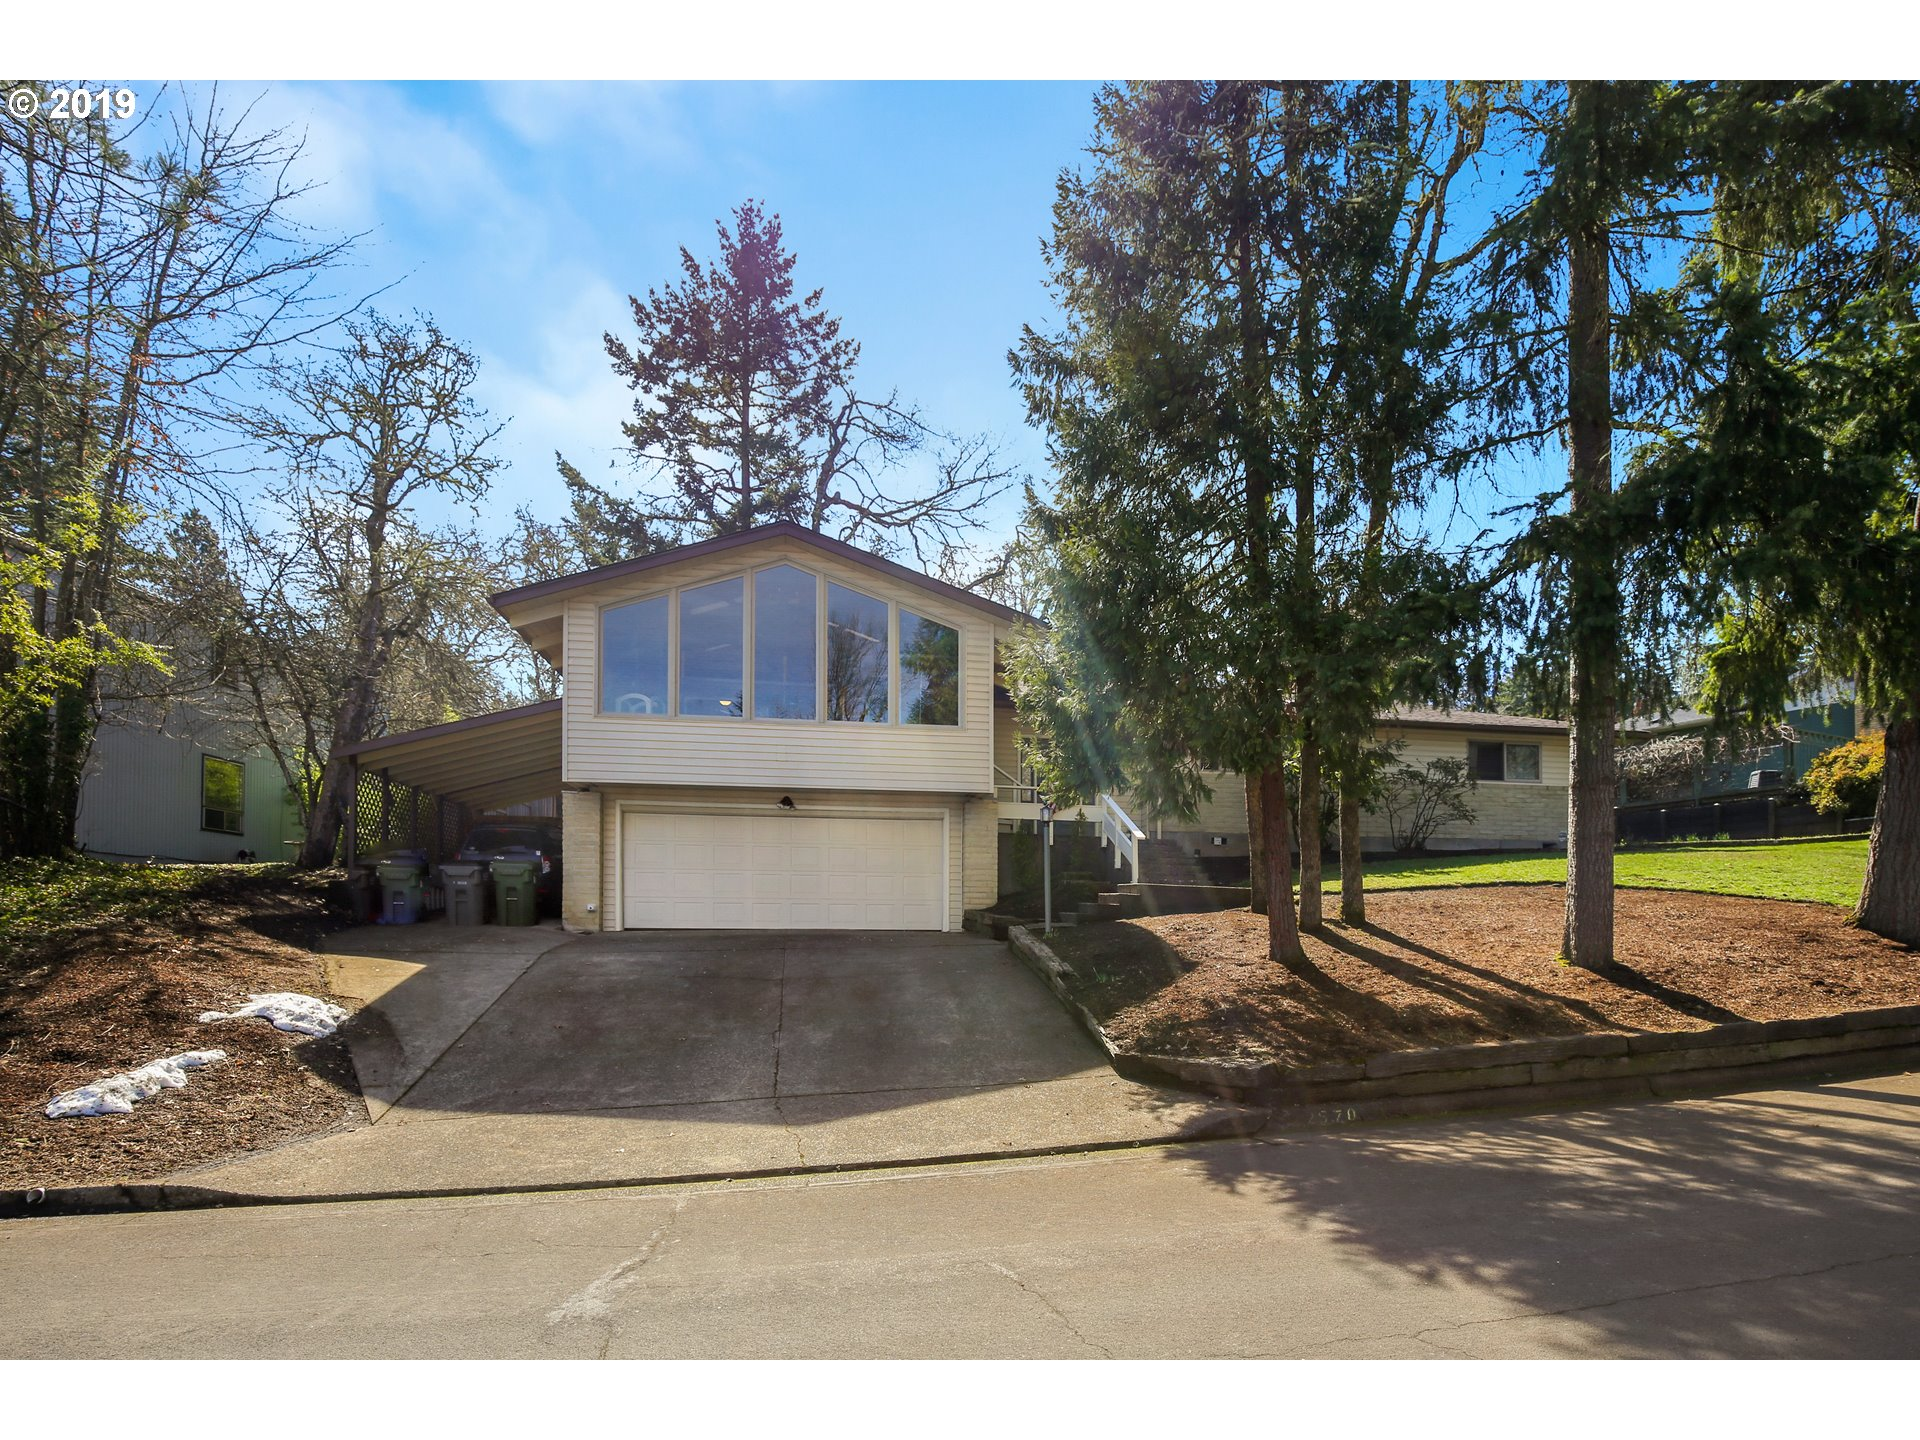 2570 W 21ST AVE, Eugene OR 97405